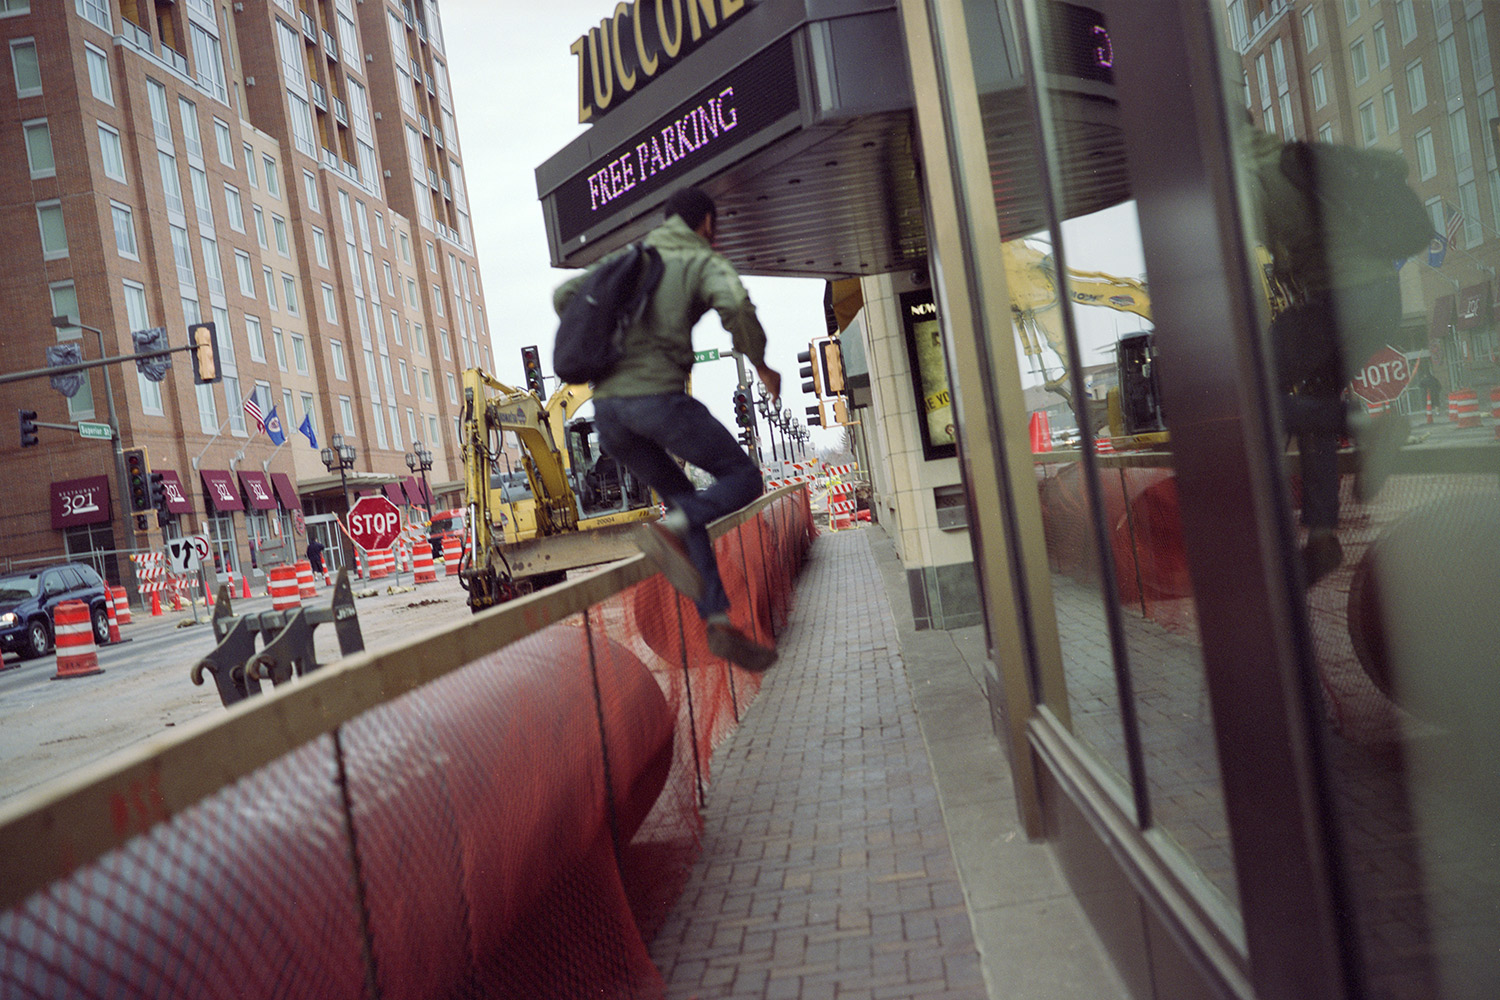 Man Leaping Over A Construction Barricade, Duluth, Minnesota, May 2011